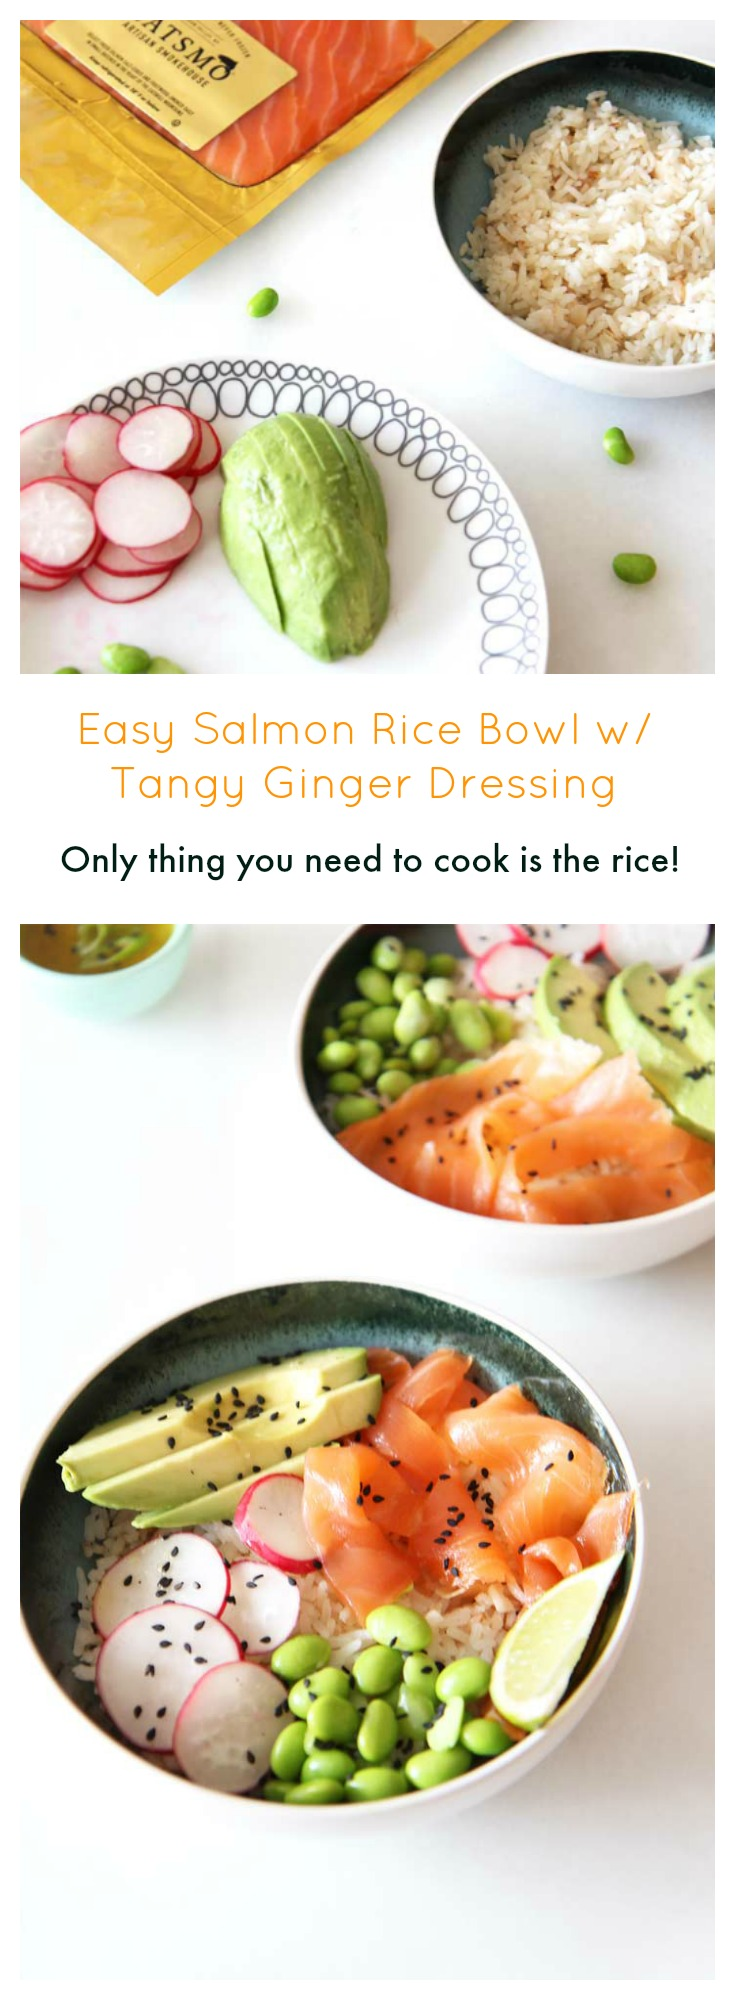 Easy Salmon Rice Bowl Recipe w/ Ginger Dressing. ChopHappy.com